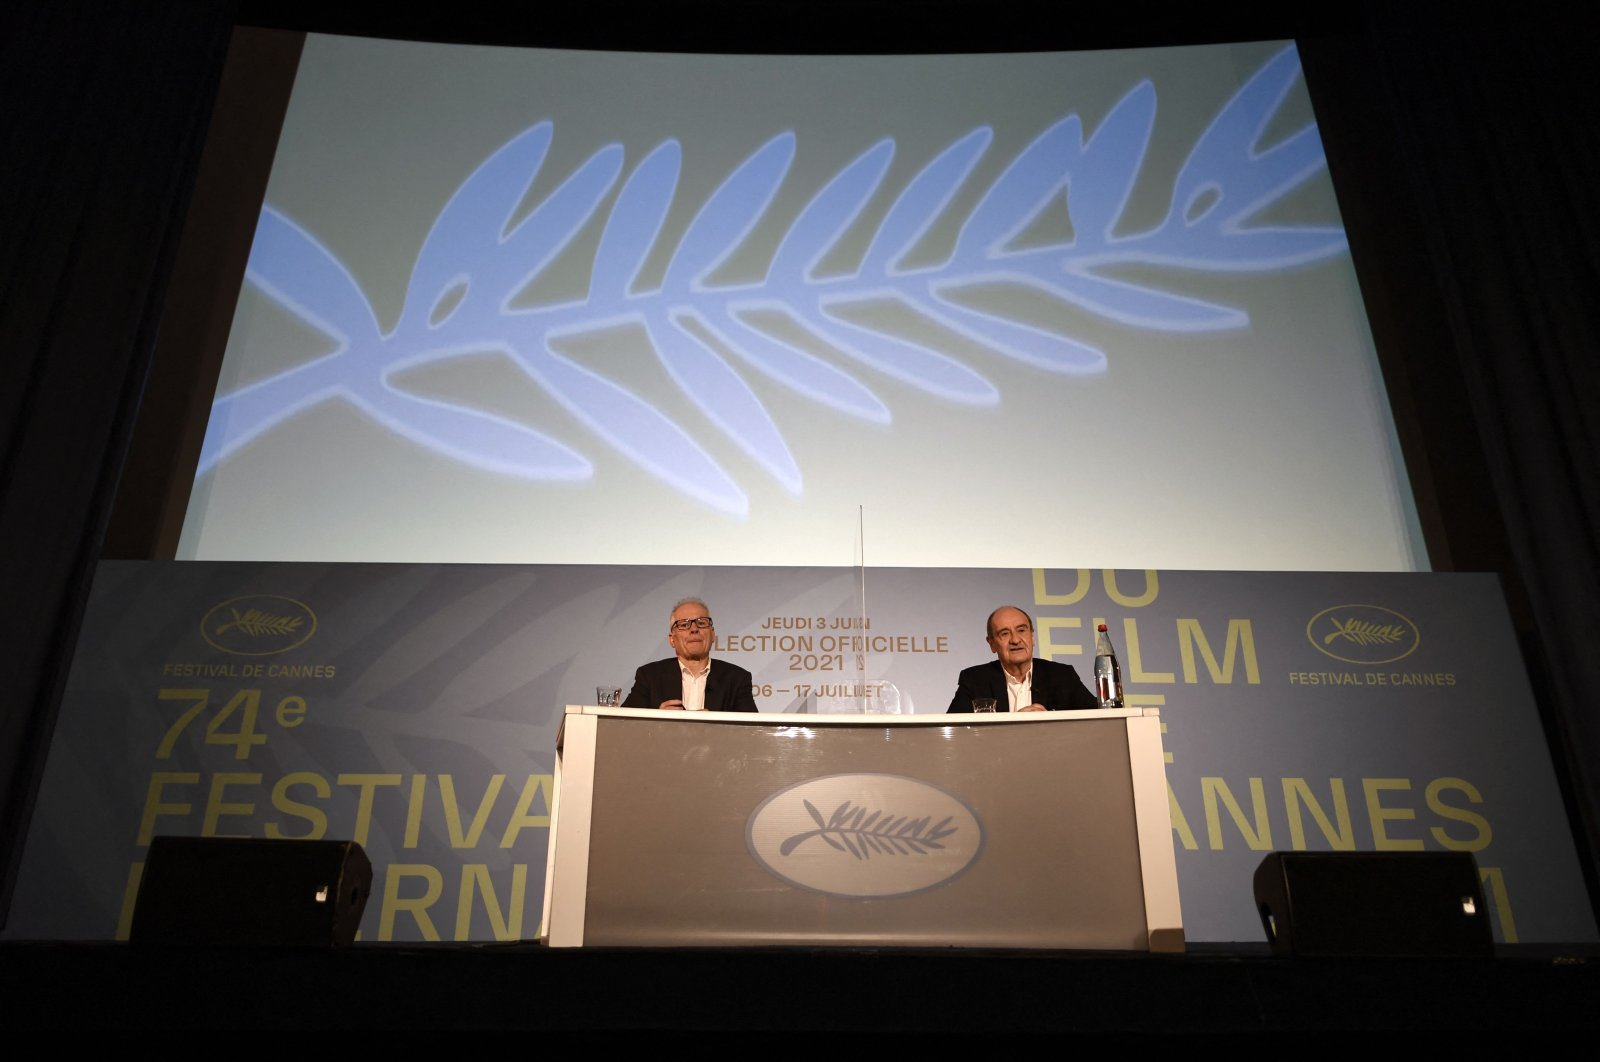 Cannes film festival general delegate Thierry Fremaux (L) and French director of the Cannes film festival Pierre Lescure attend a press conference to announce the official selection of the 74th Cannes Film Festival, Paris, France, June 3, 2021. (AFP Photo)